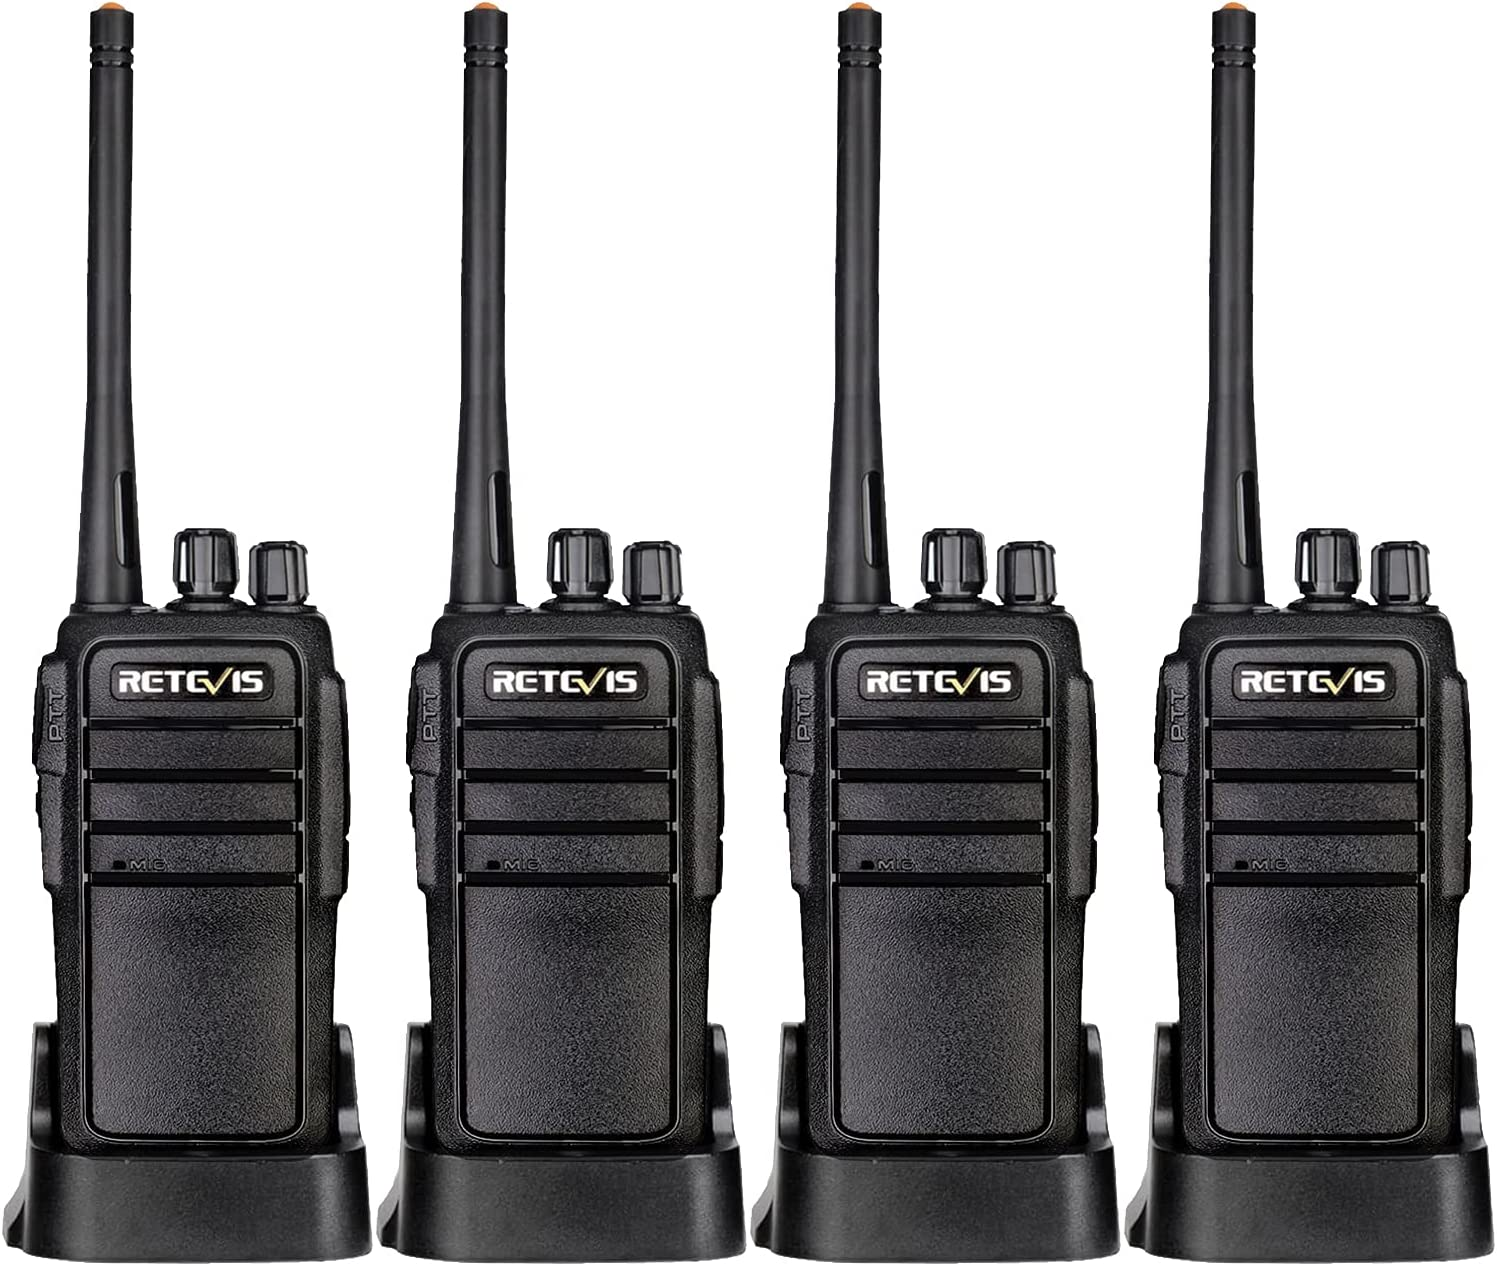 Case of 4 Retevis RT21 quality assurance Walkie Adults Direct sale of manufacturer Two Rechargeable Talkies W